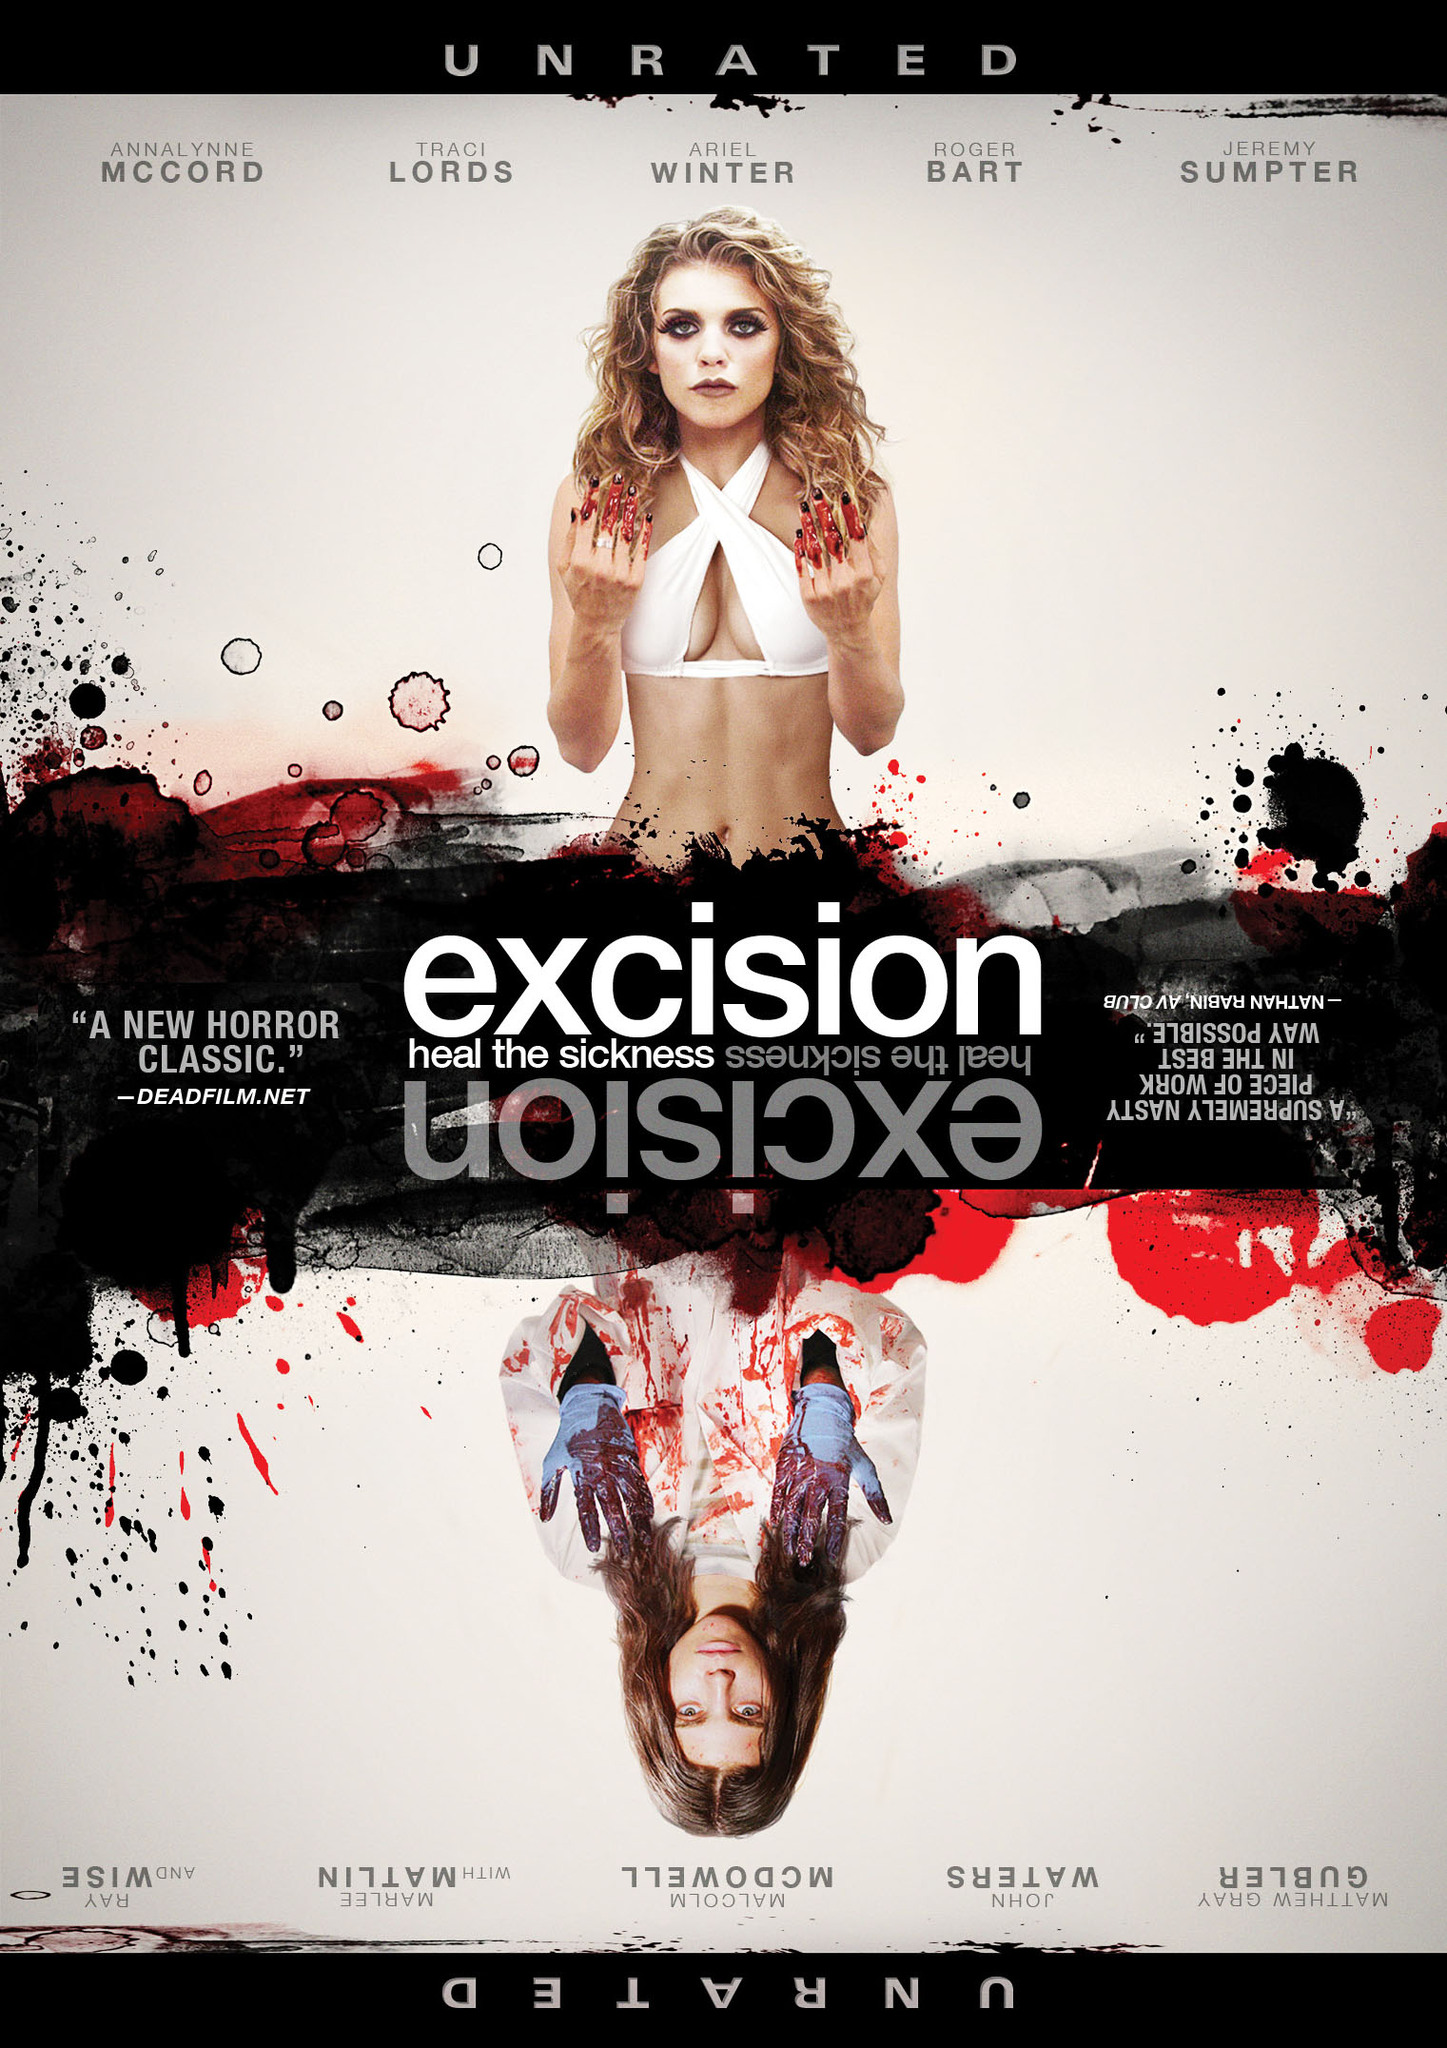 18+ Excision 2012 Hindi Dual Audio 1080p UNRATED BluRay ESubs 1.4GB